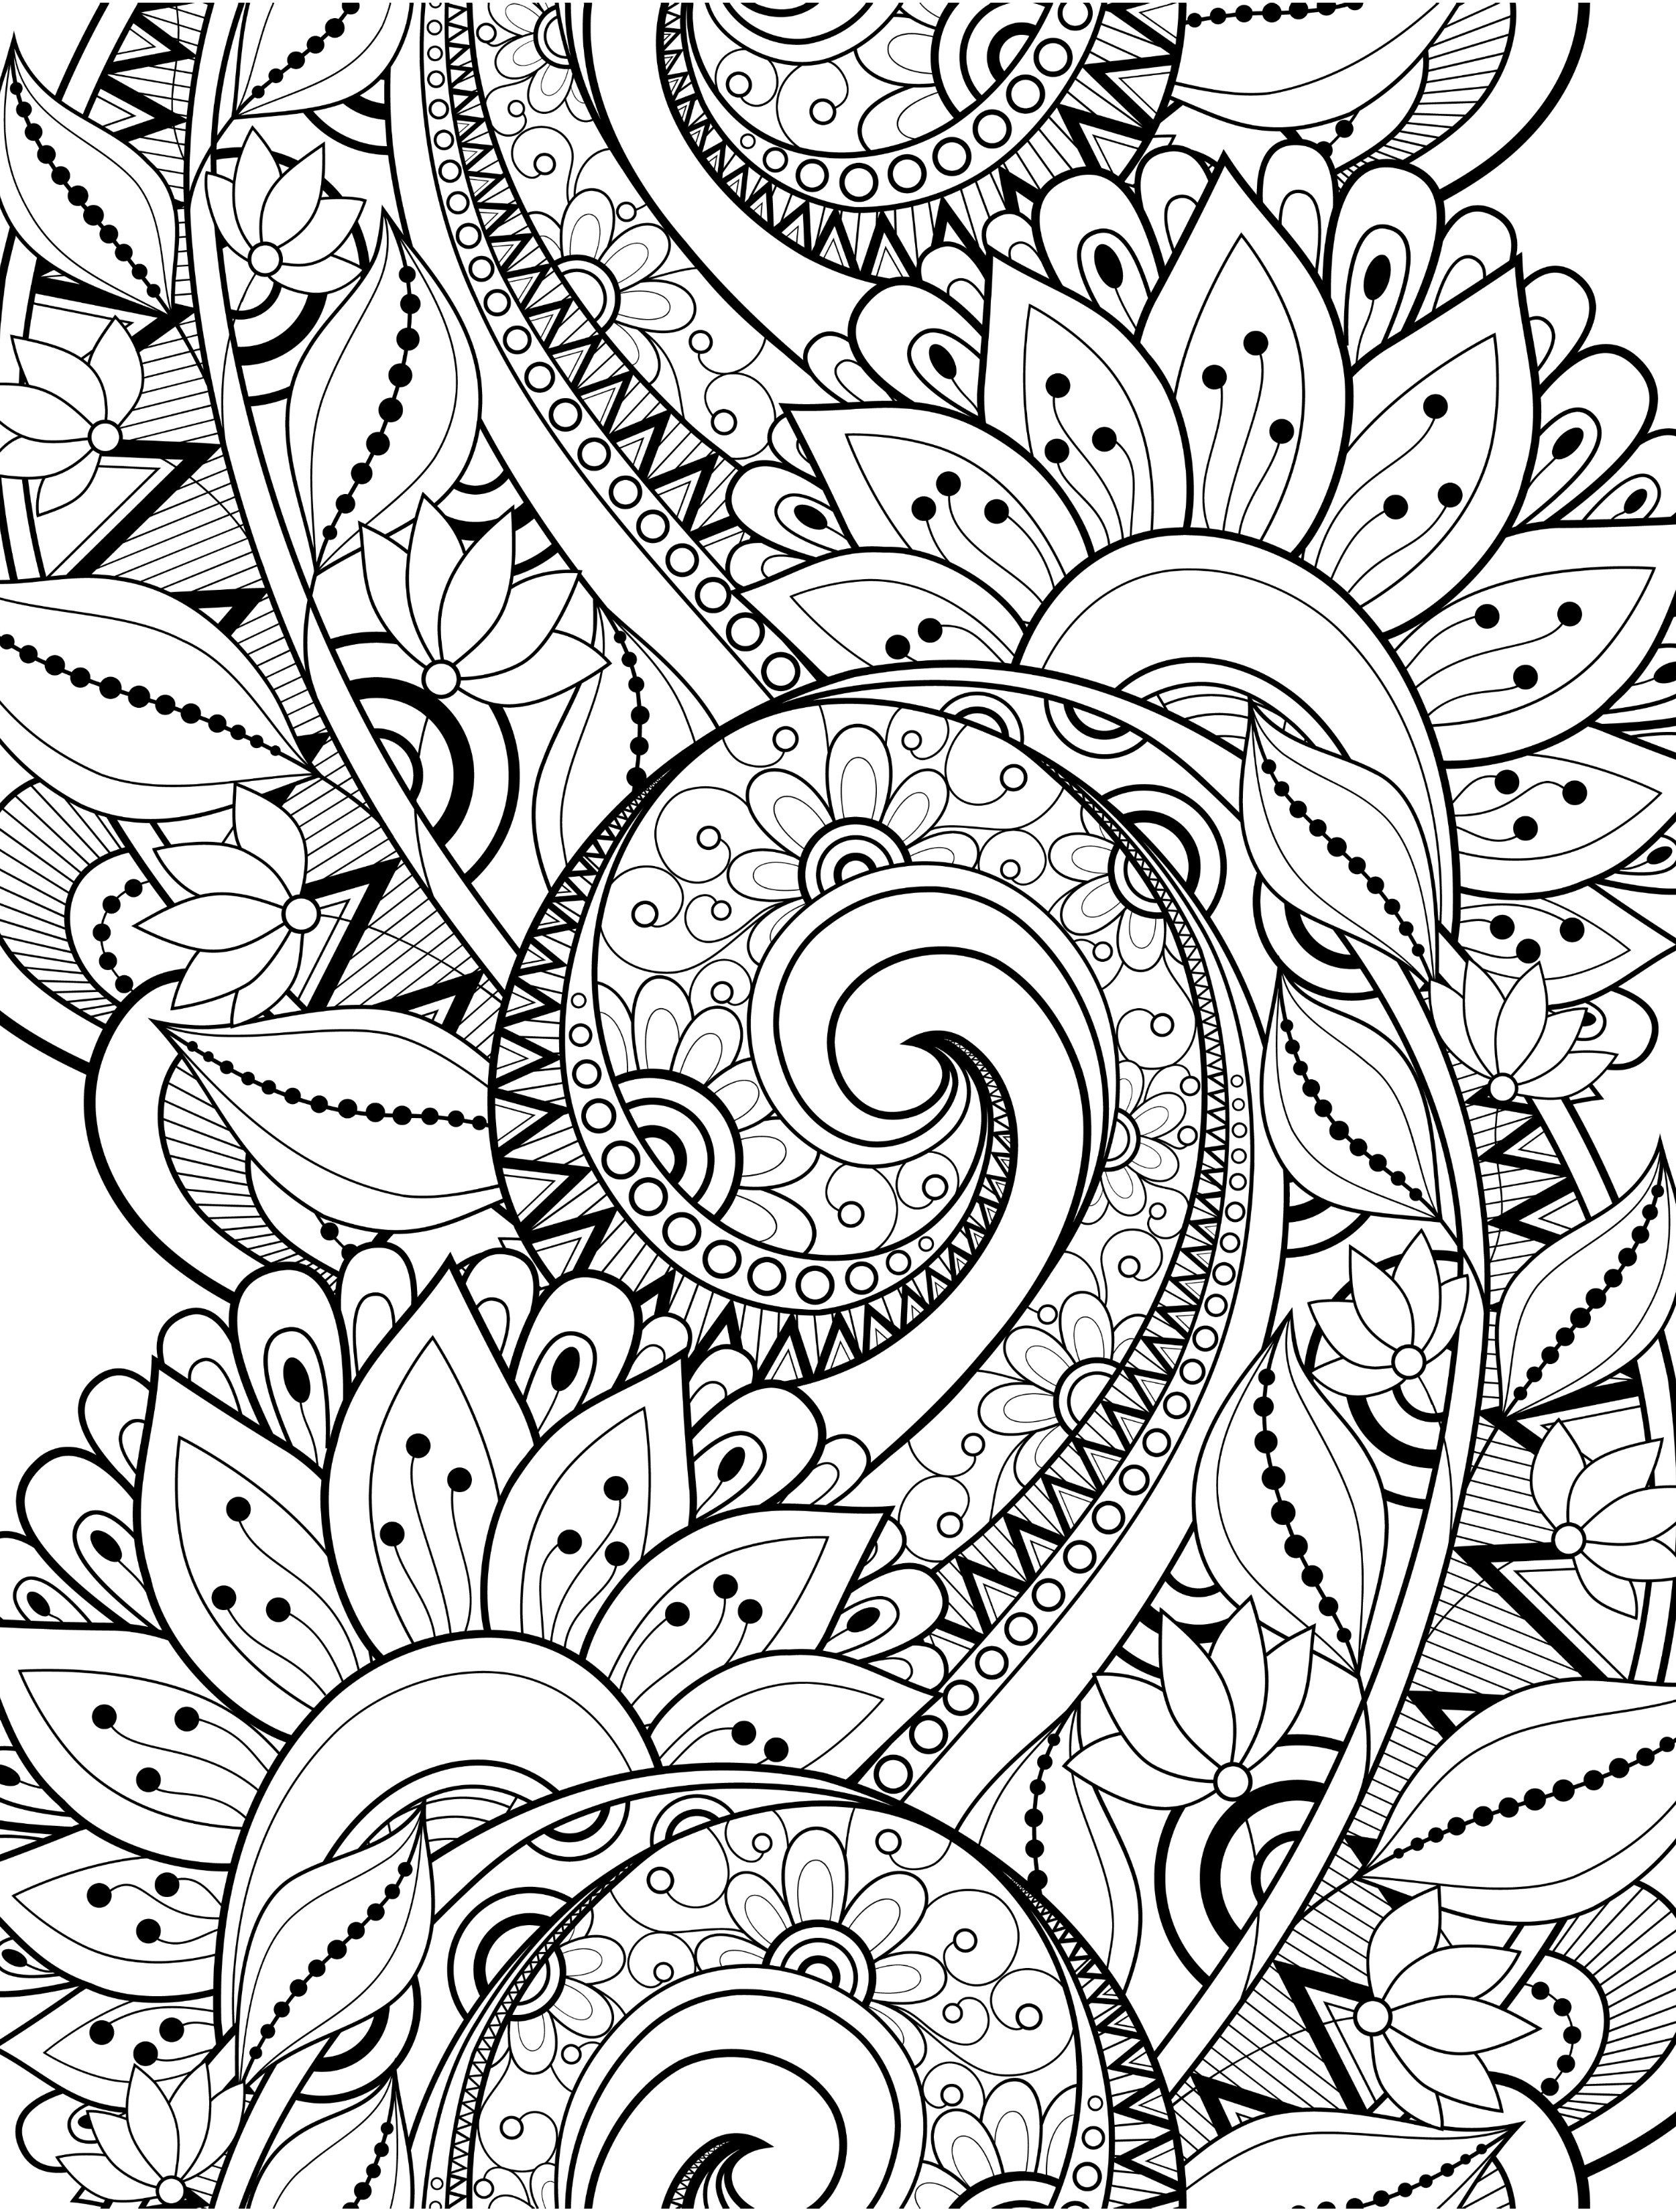 Crazy Coloring Pages 15 Crazy Busy Coloring Pages For Adults  Page 6 Of 16  Crazy